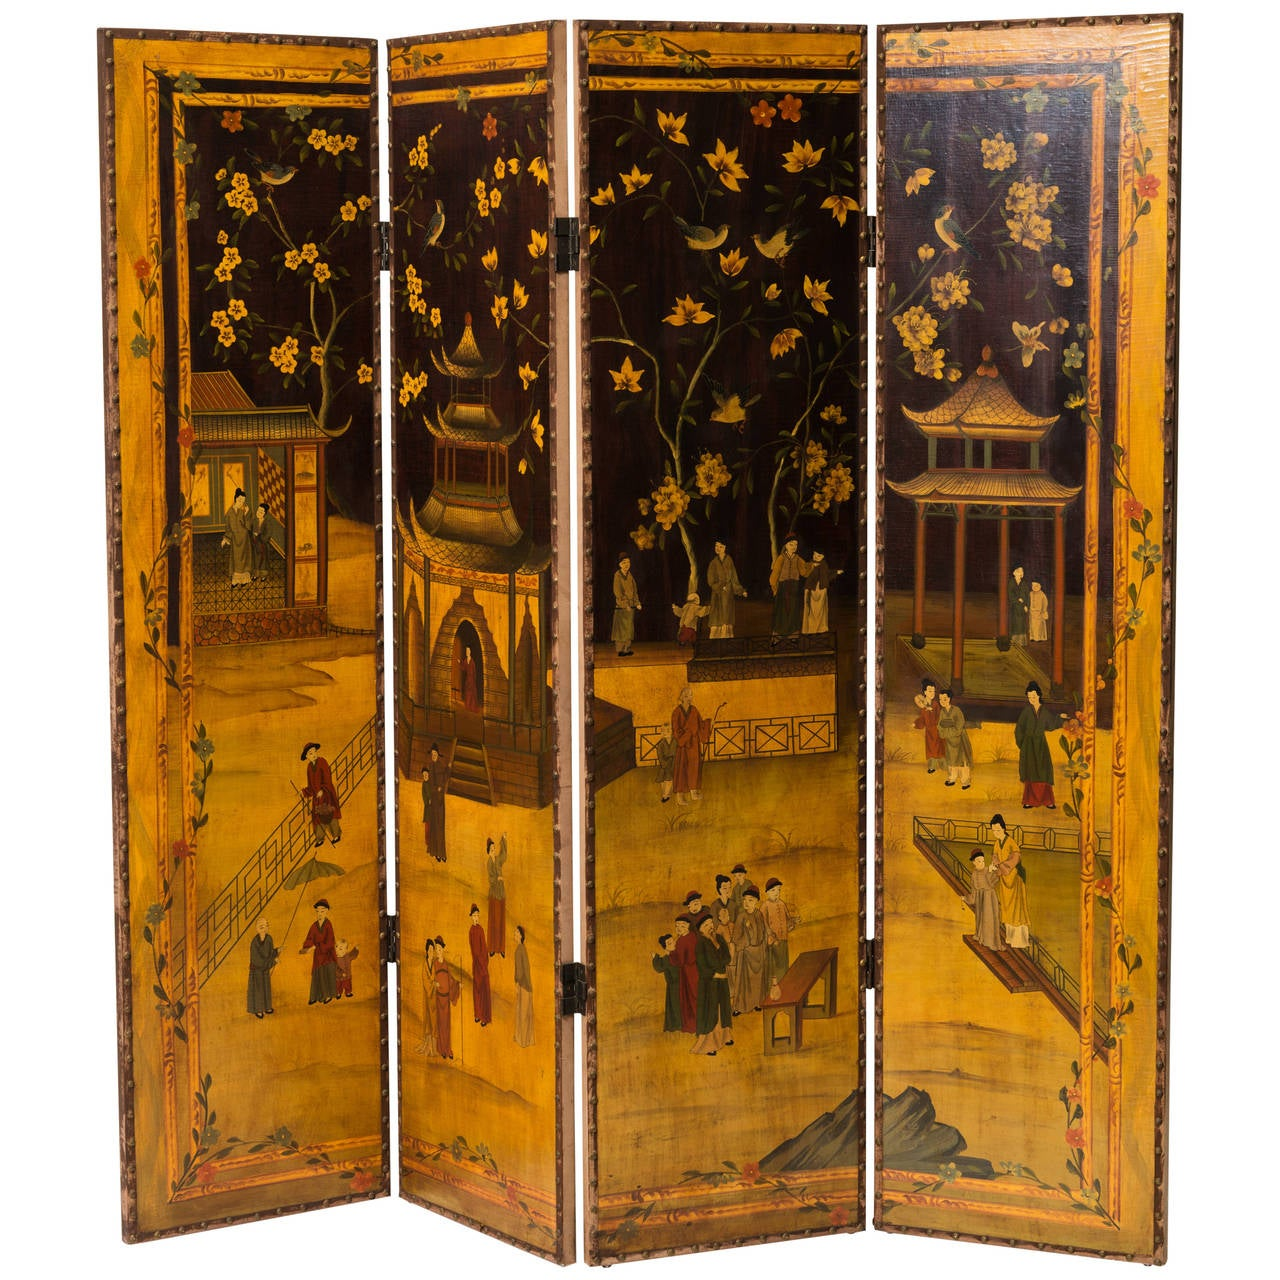 Hand painted asian motif room divider for sale at 1stdibs for Painted screens room dividers